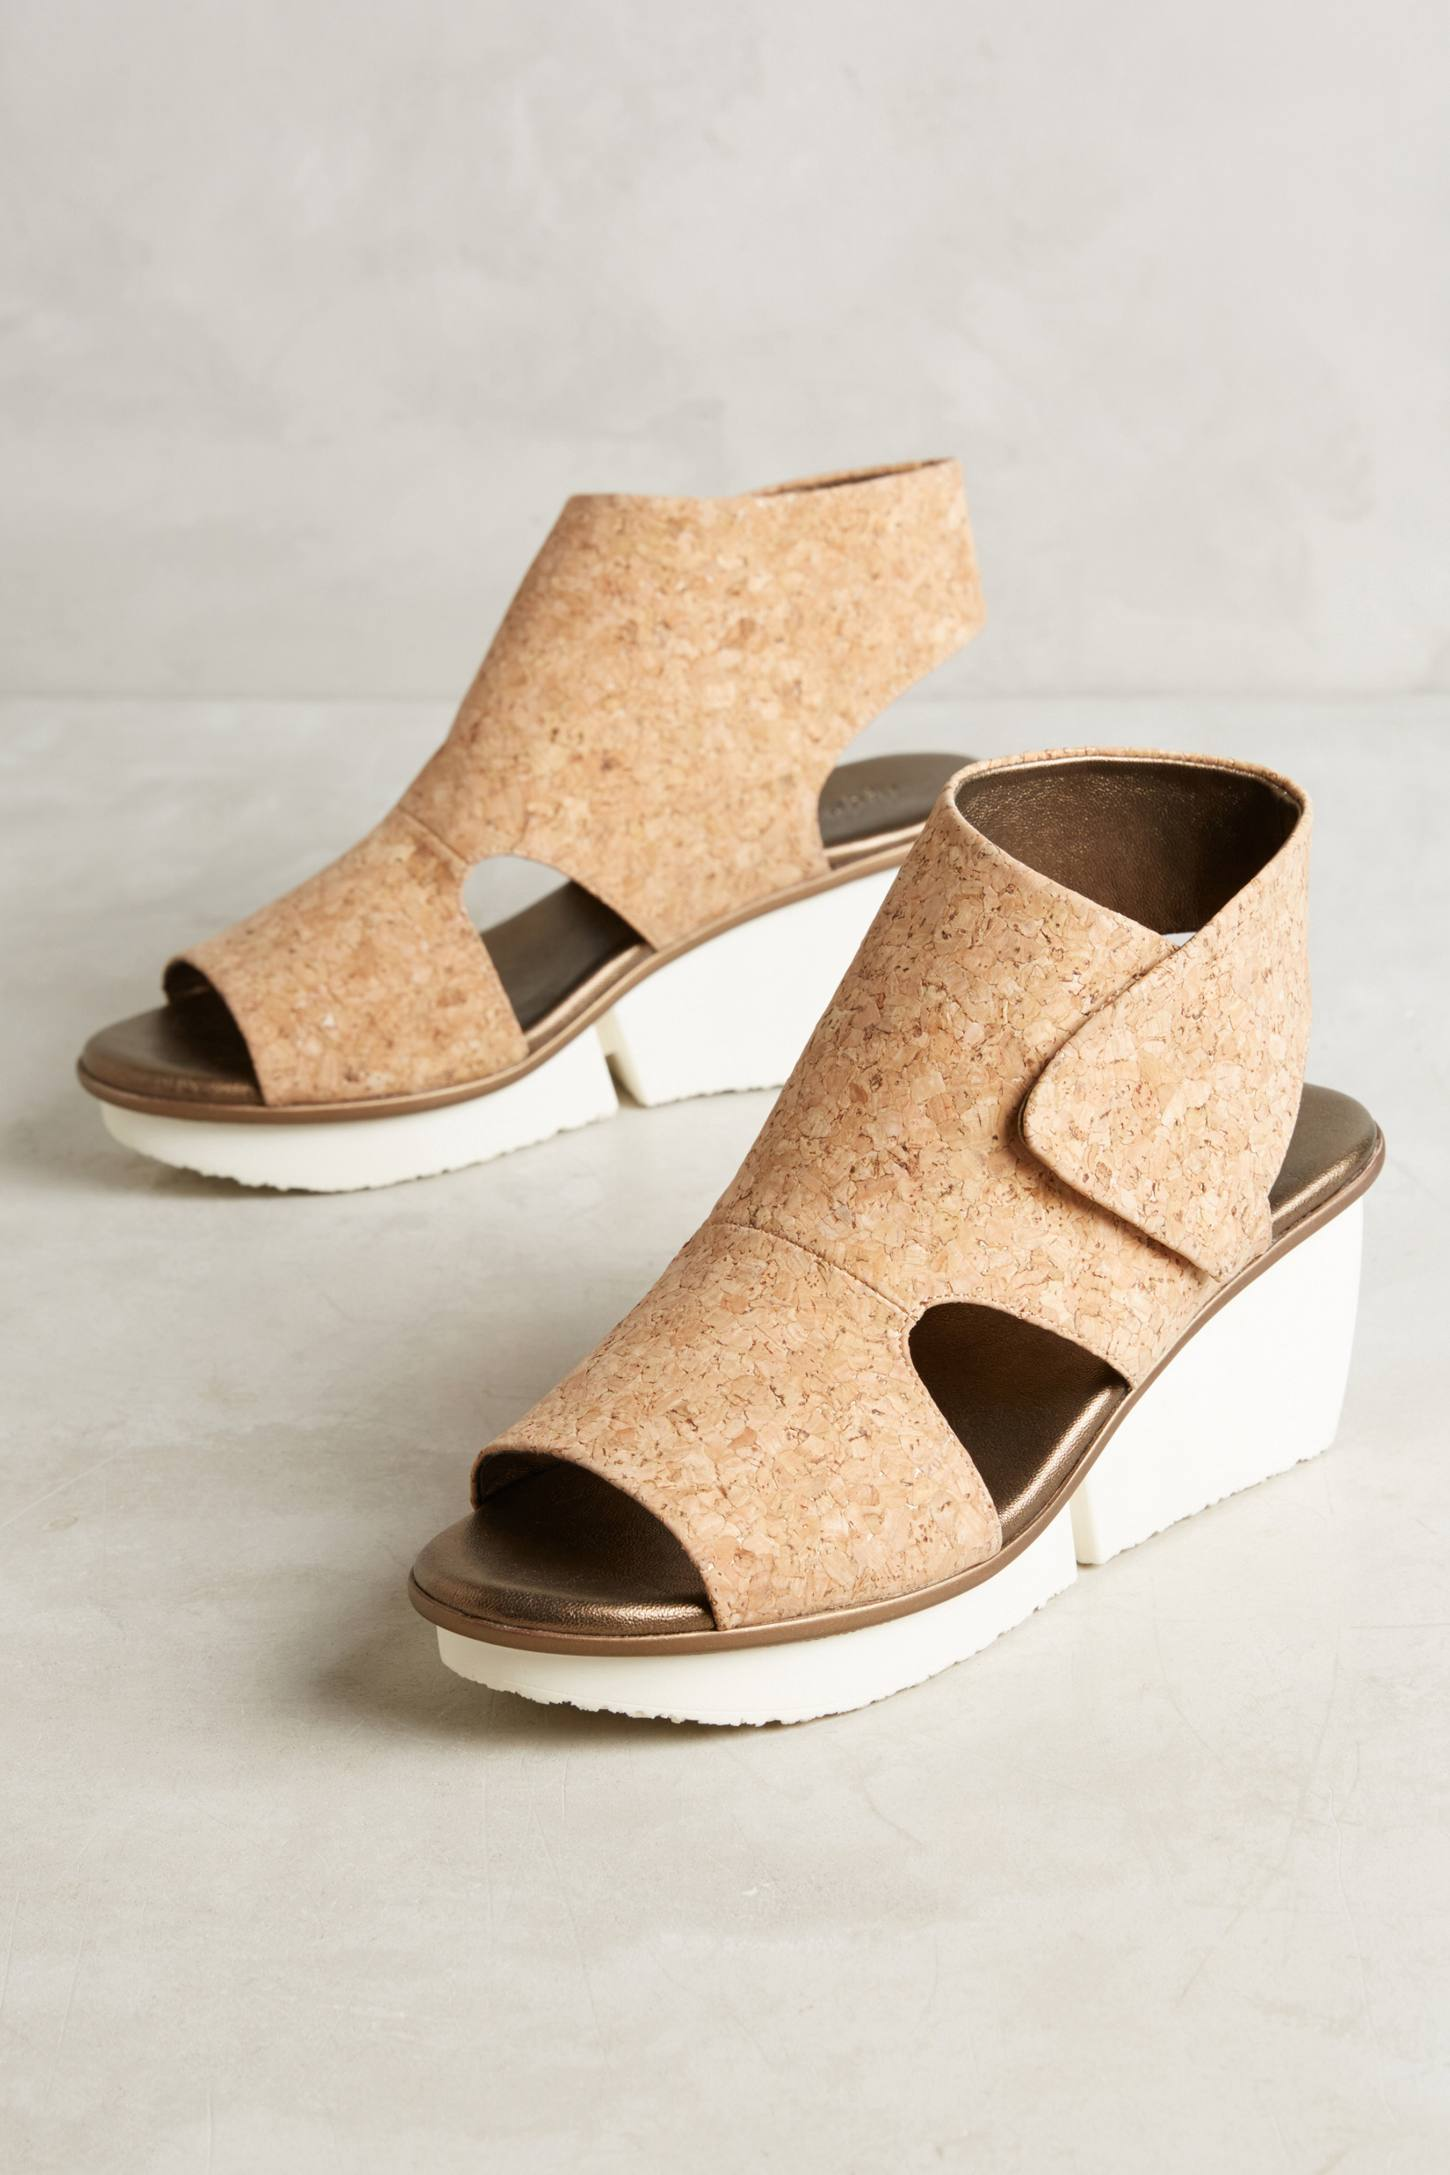 Slide View: 1: Farylrobin Seeker Cork Wedges